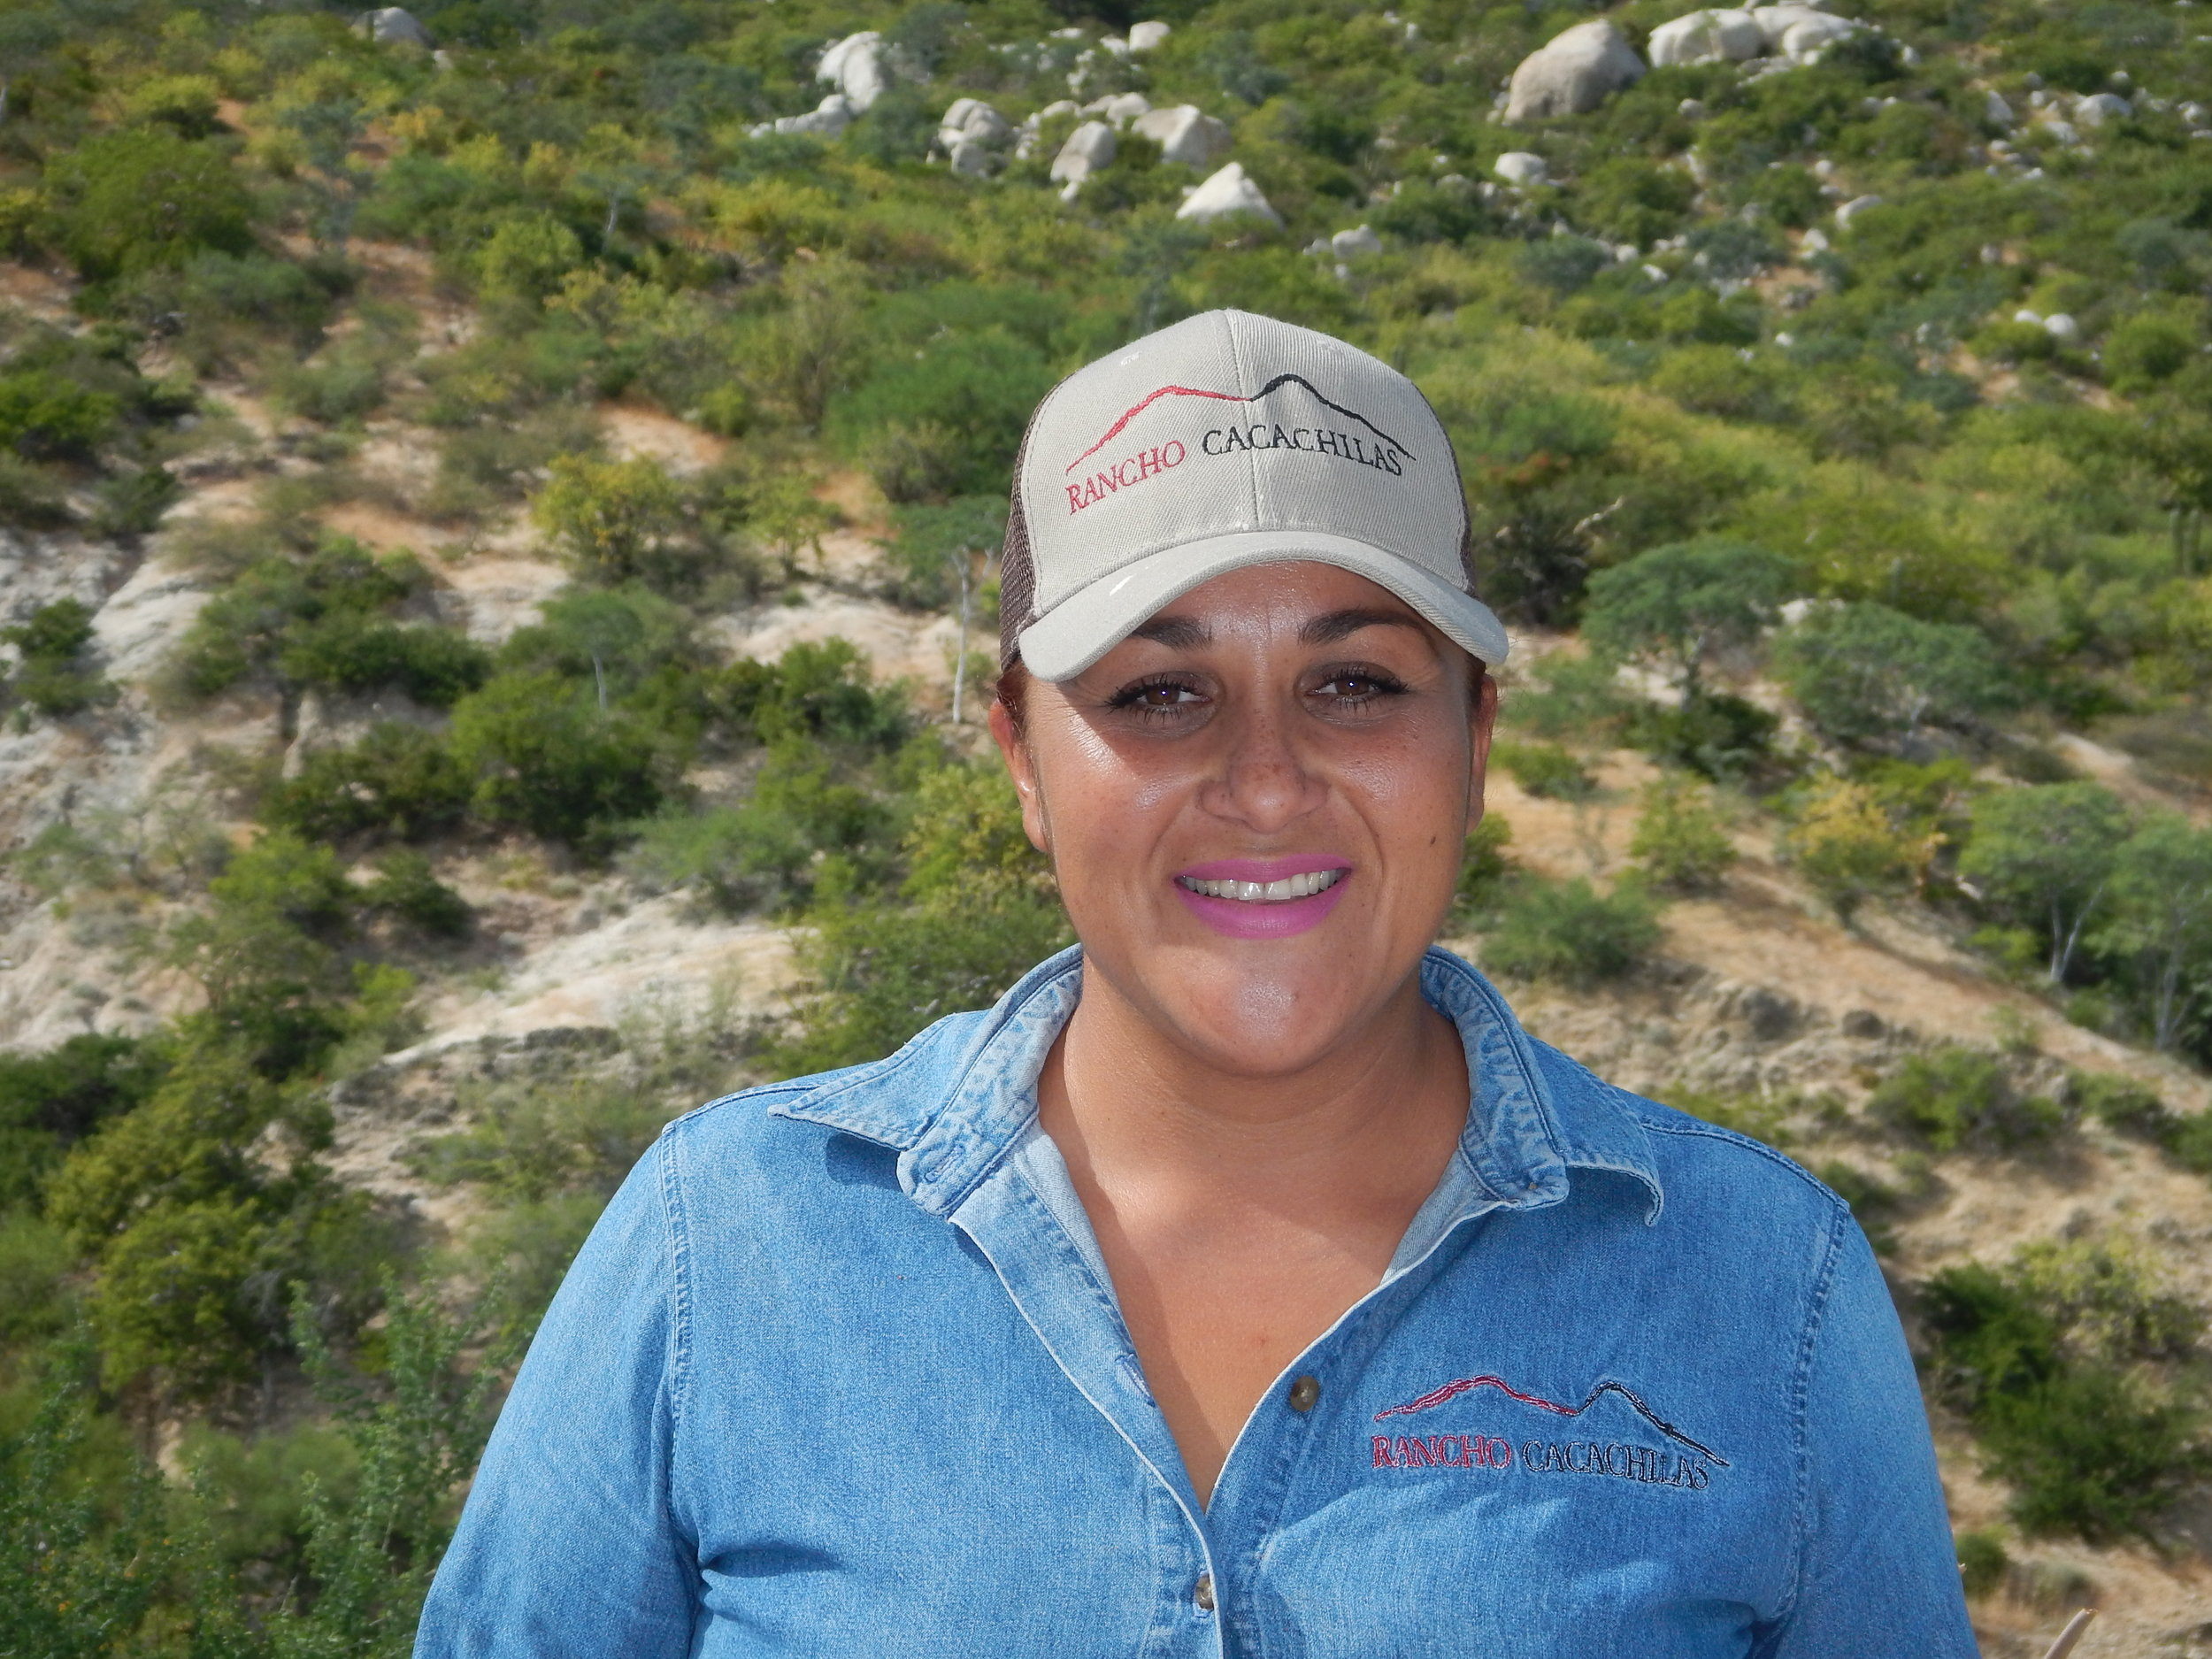 Yessenia Cota Lucero - Hospitality Team Member   Part of the local community of El Sargento, Member of the hospitality team who takes care of the accommodations arrangements and the kitchen duty. Charismatic and willing to help.